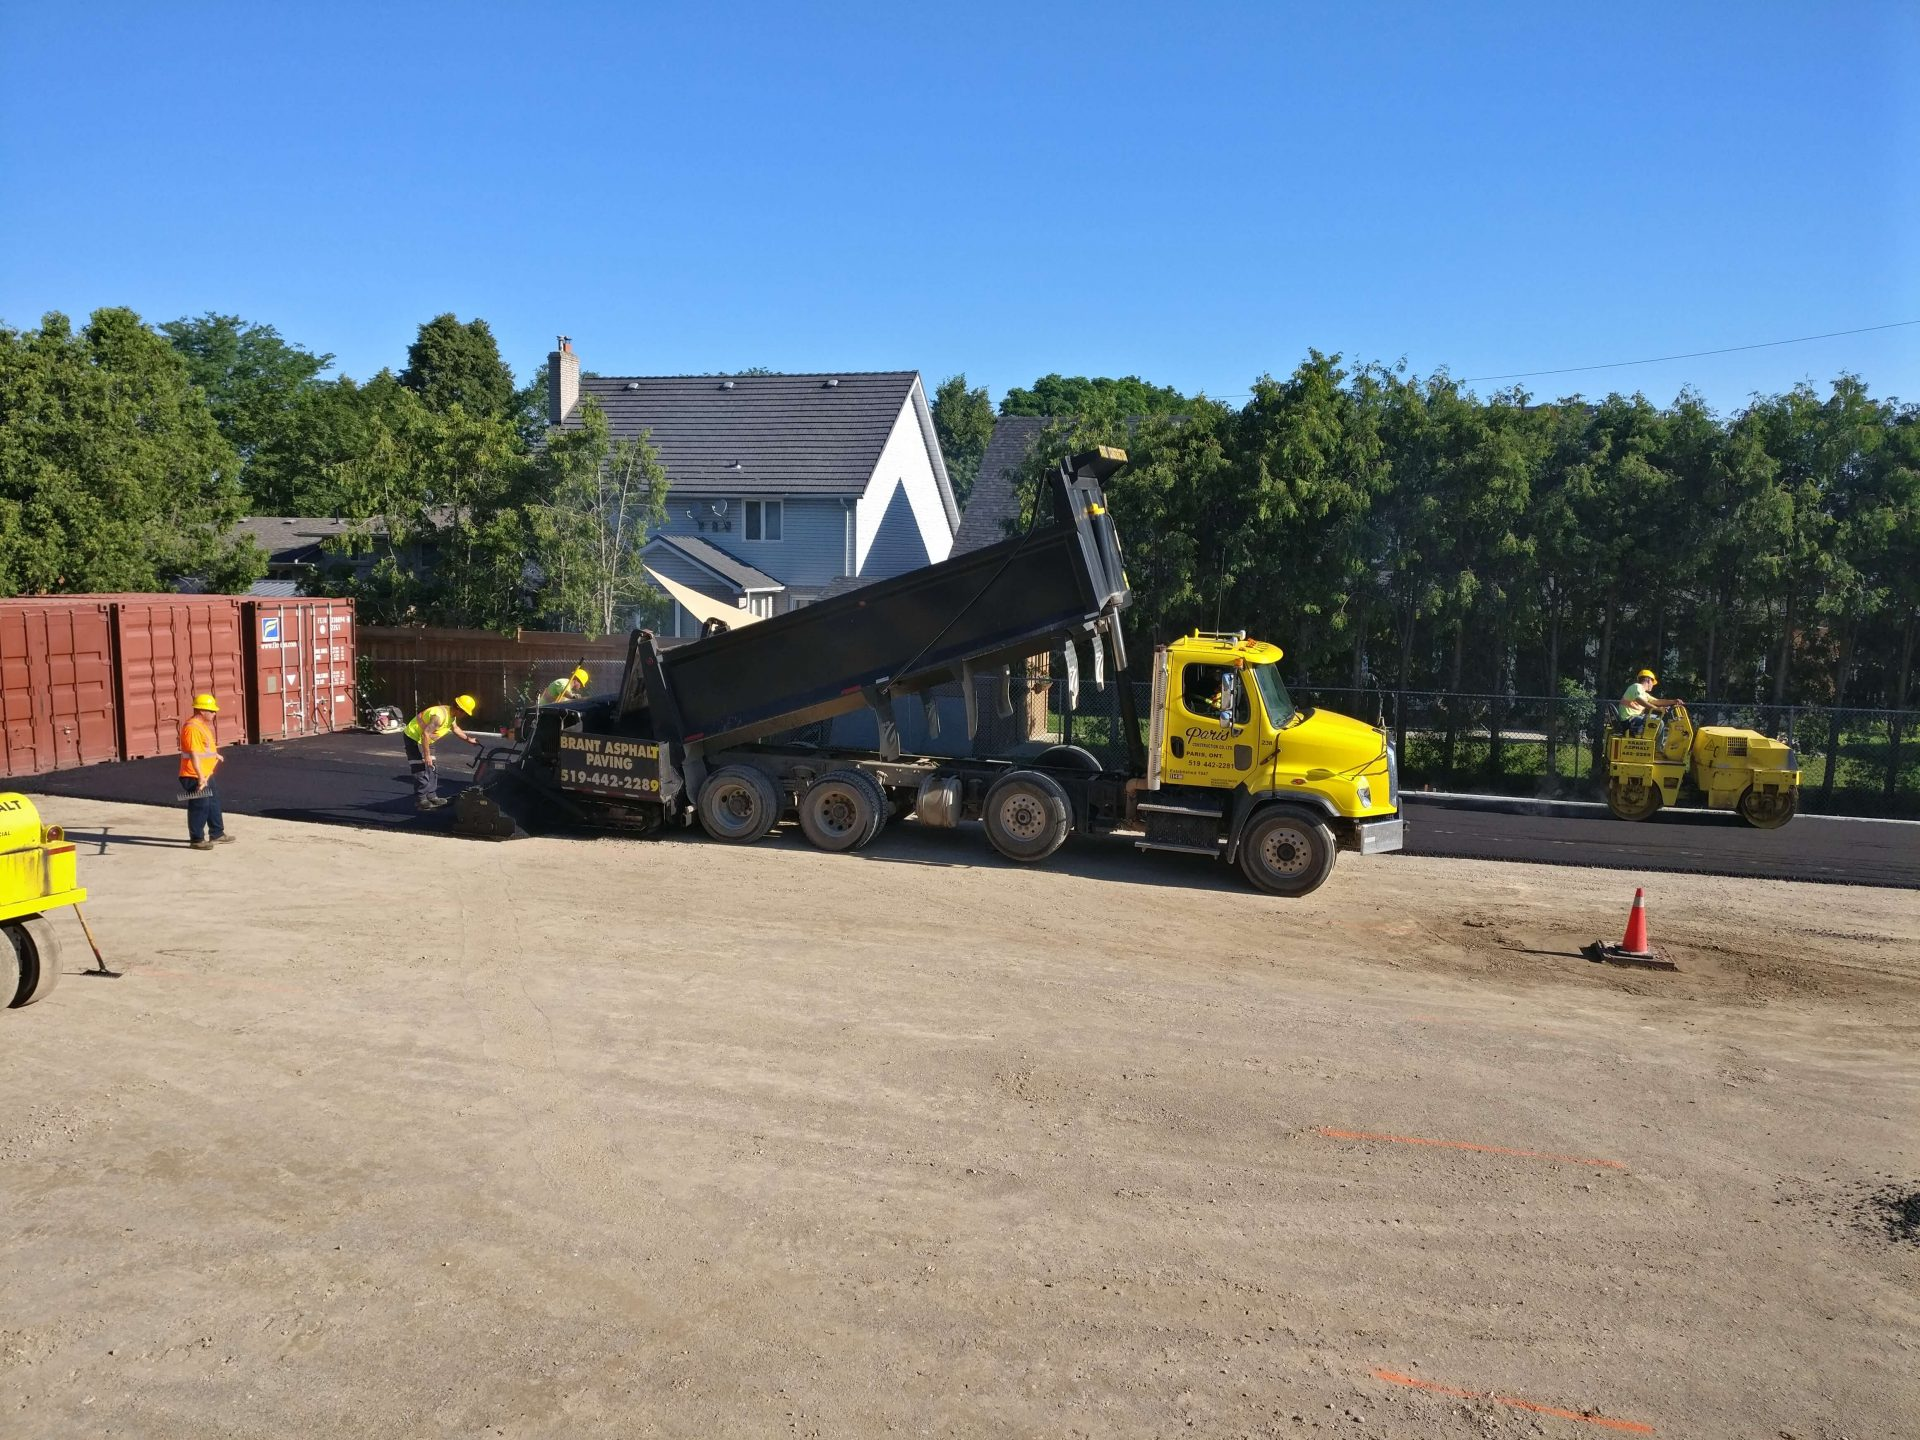 Dump truck pouring asphalt with Paris Construction workers